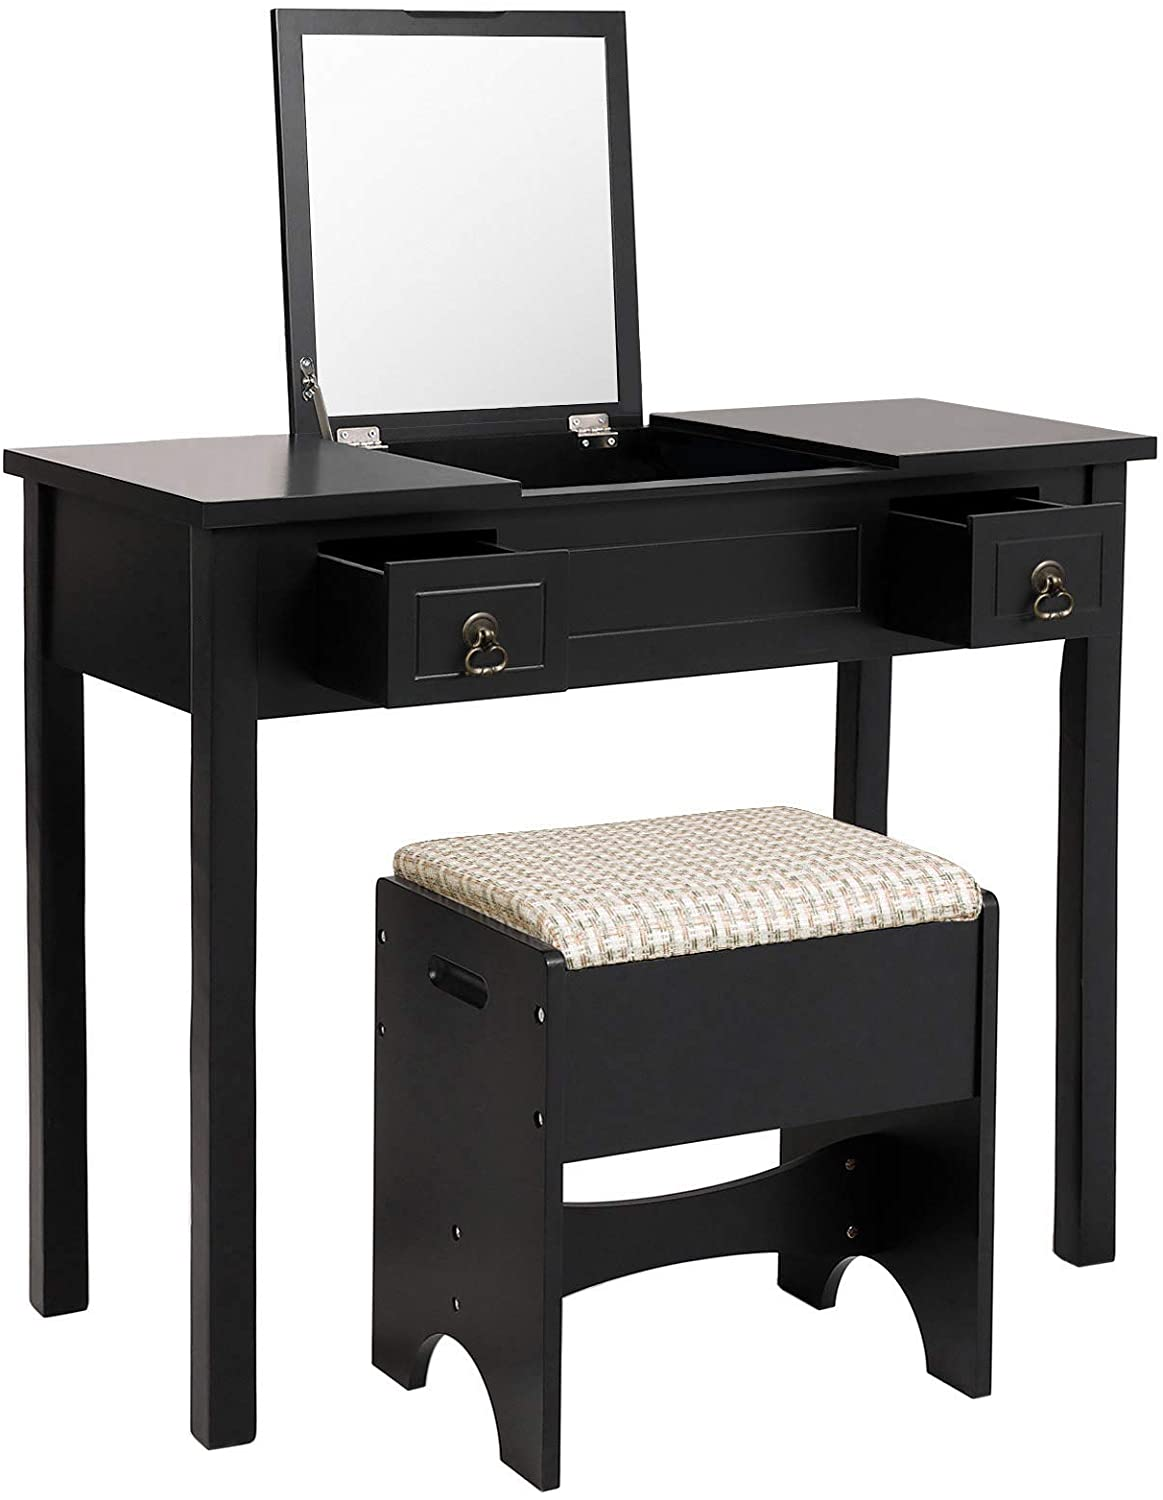 Enjoy fast, free nationwide shipping!  Family owned and operated, HawkinsWoodshop.com is your one stop shop for affordable furniture.  Shop HawkinsWoodshop.com for solid wood & metal modern, traditional, contemporary, industrial, custom, rustic, and farmhouse furniture including our Black Flip Top Mirror Vanity Set.